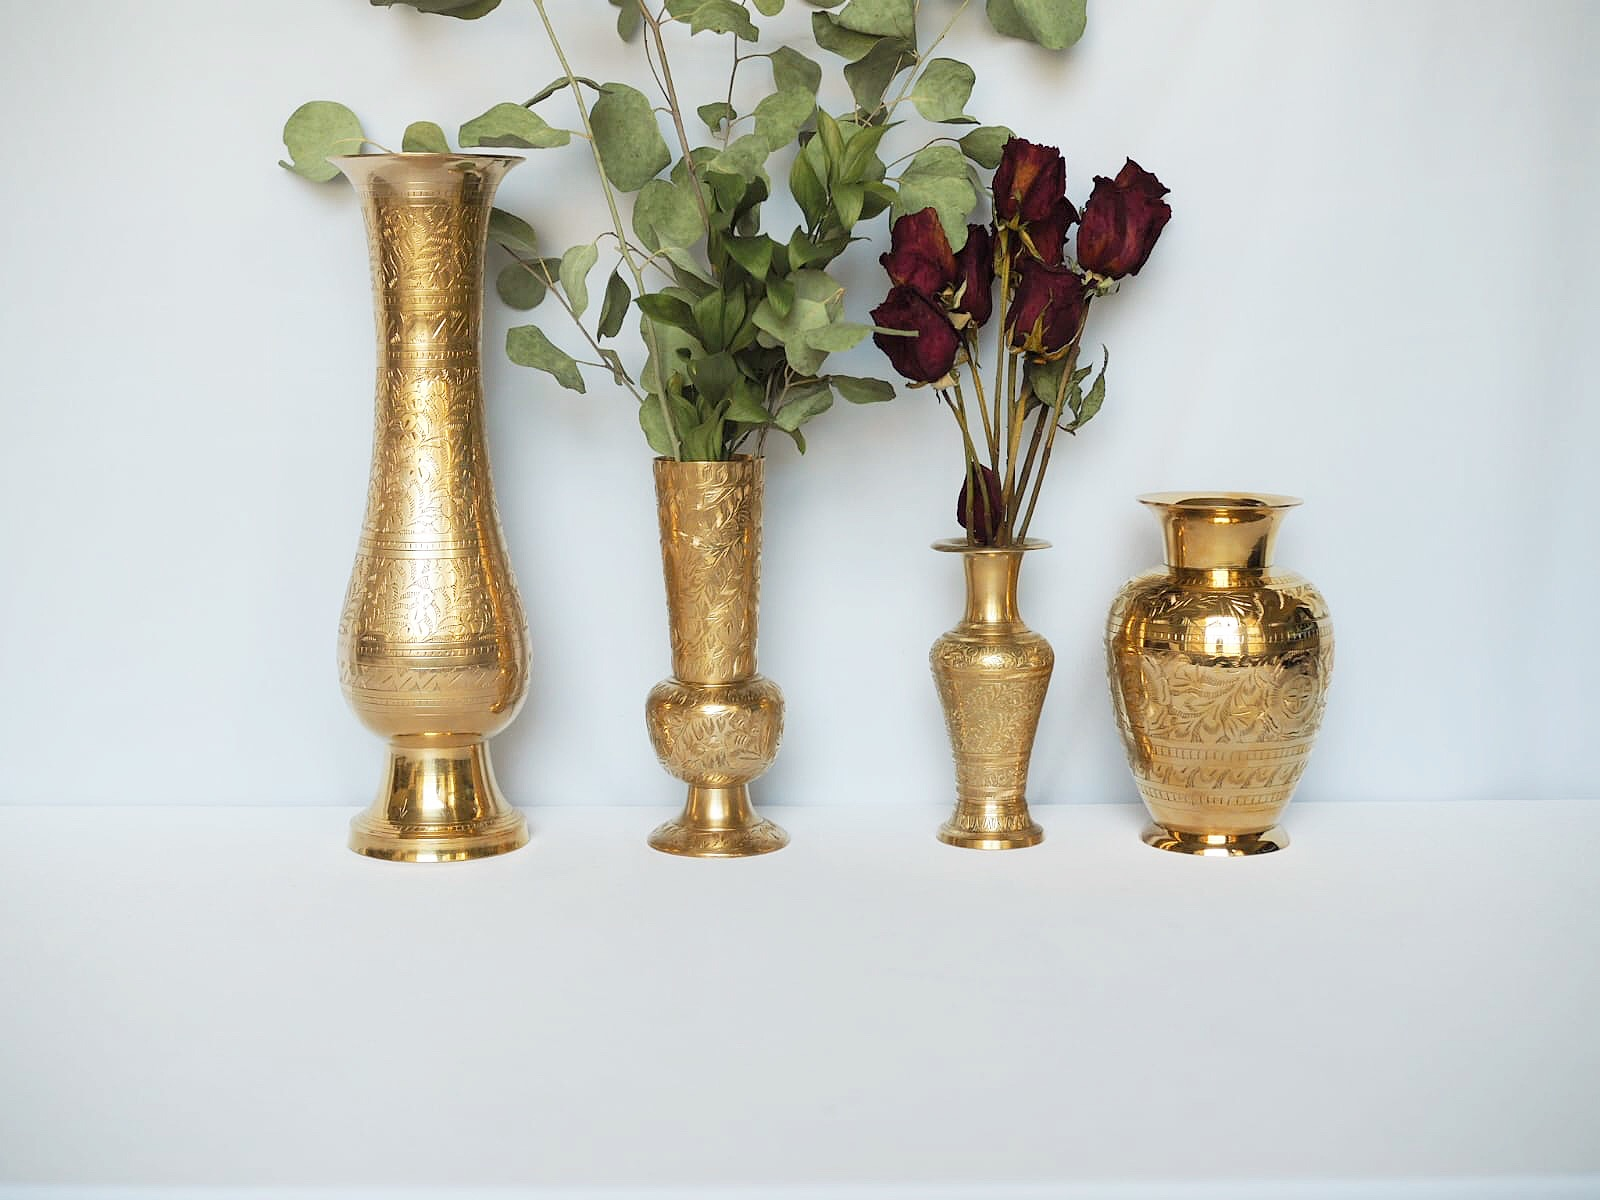 VINTAGE etched VASES RENTAL price per: $5.00 - 5 available in total*